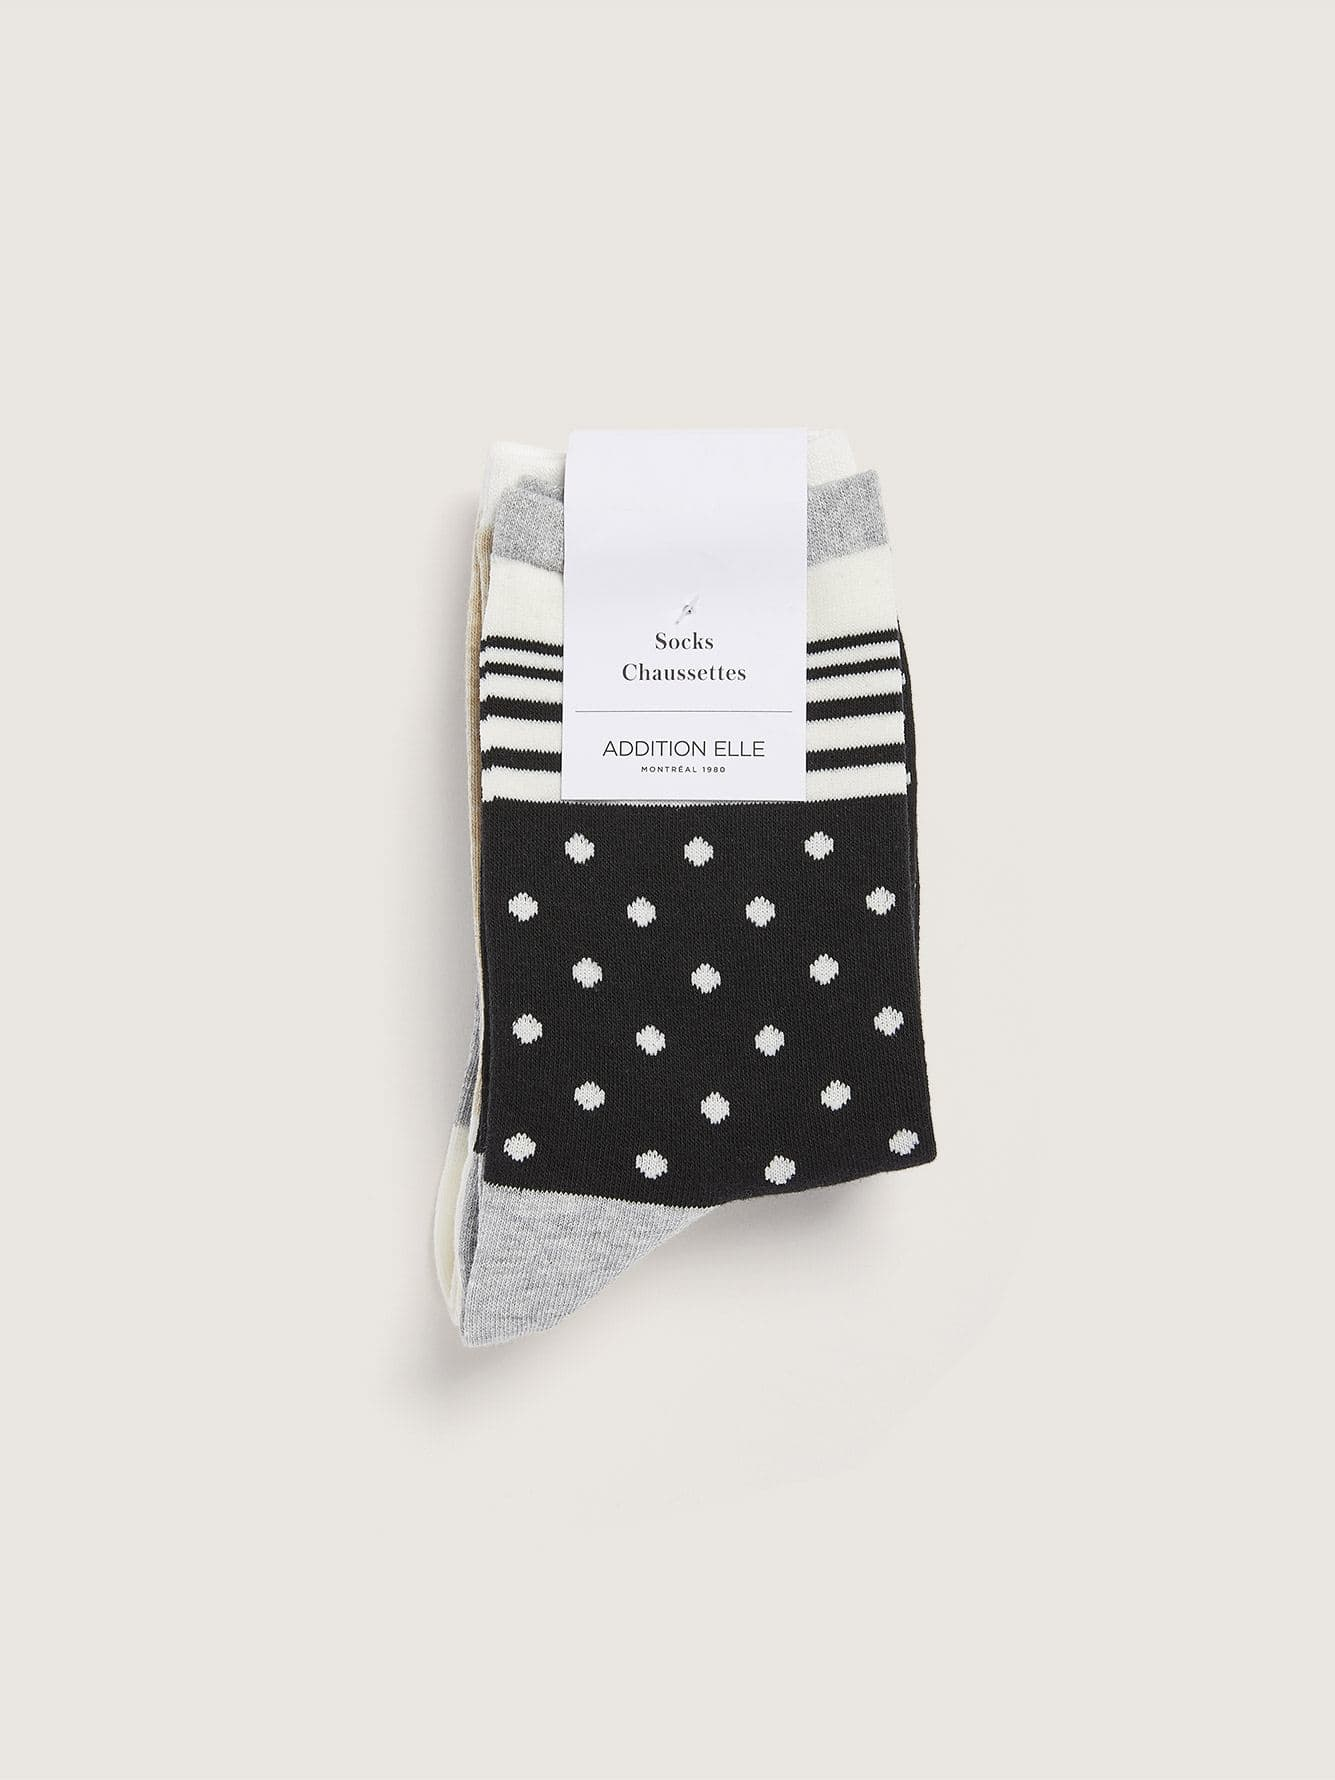 3 Pairs of Printed Cotton Socks